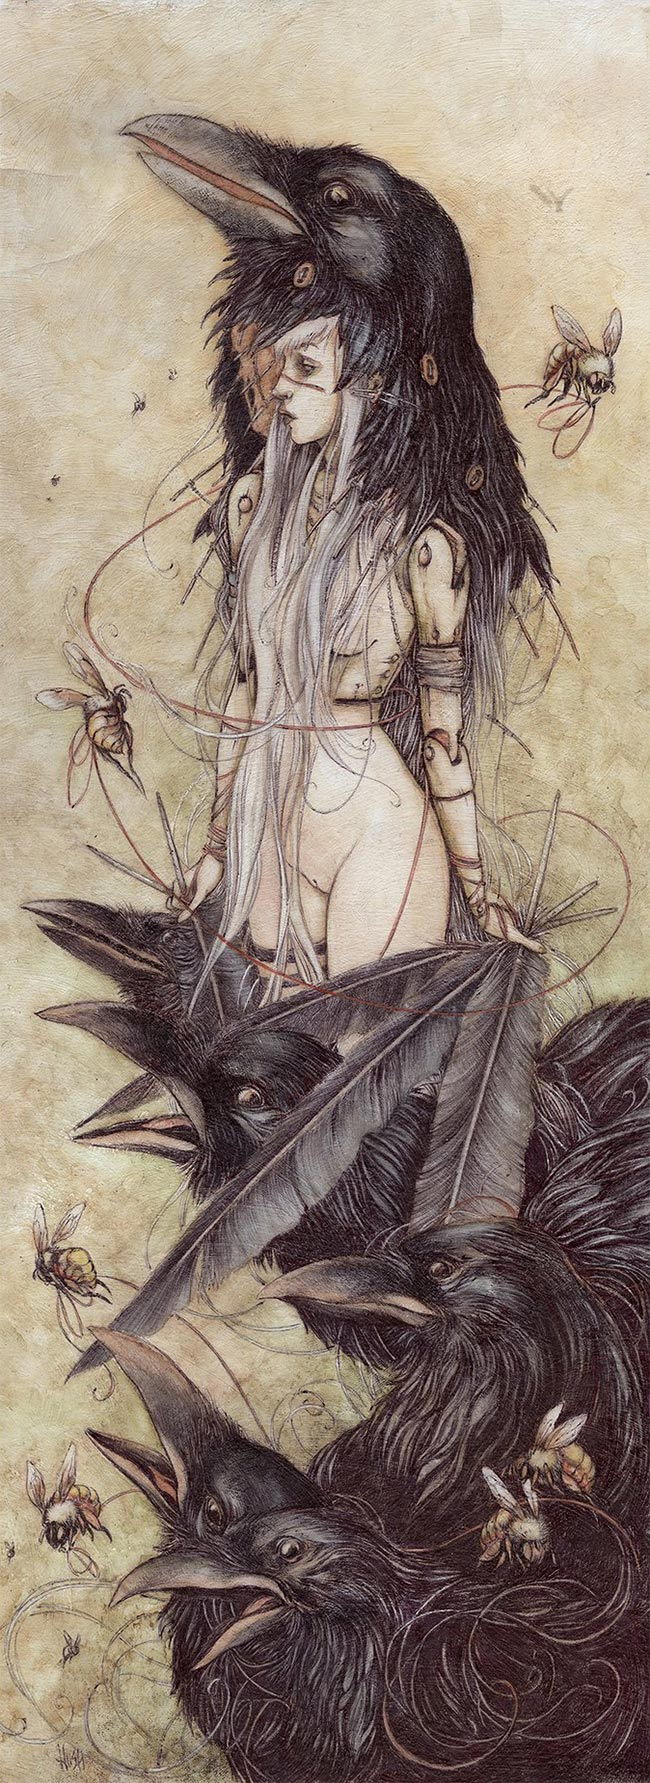 Jeremy Hush - Black Queen